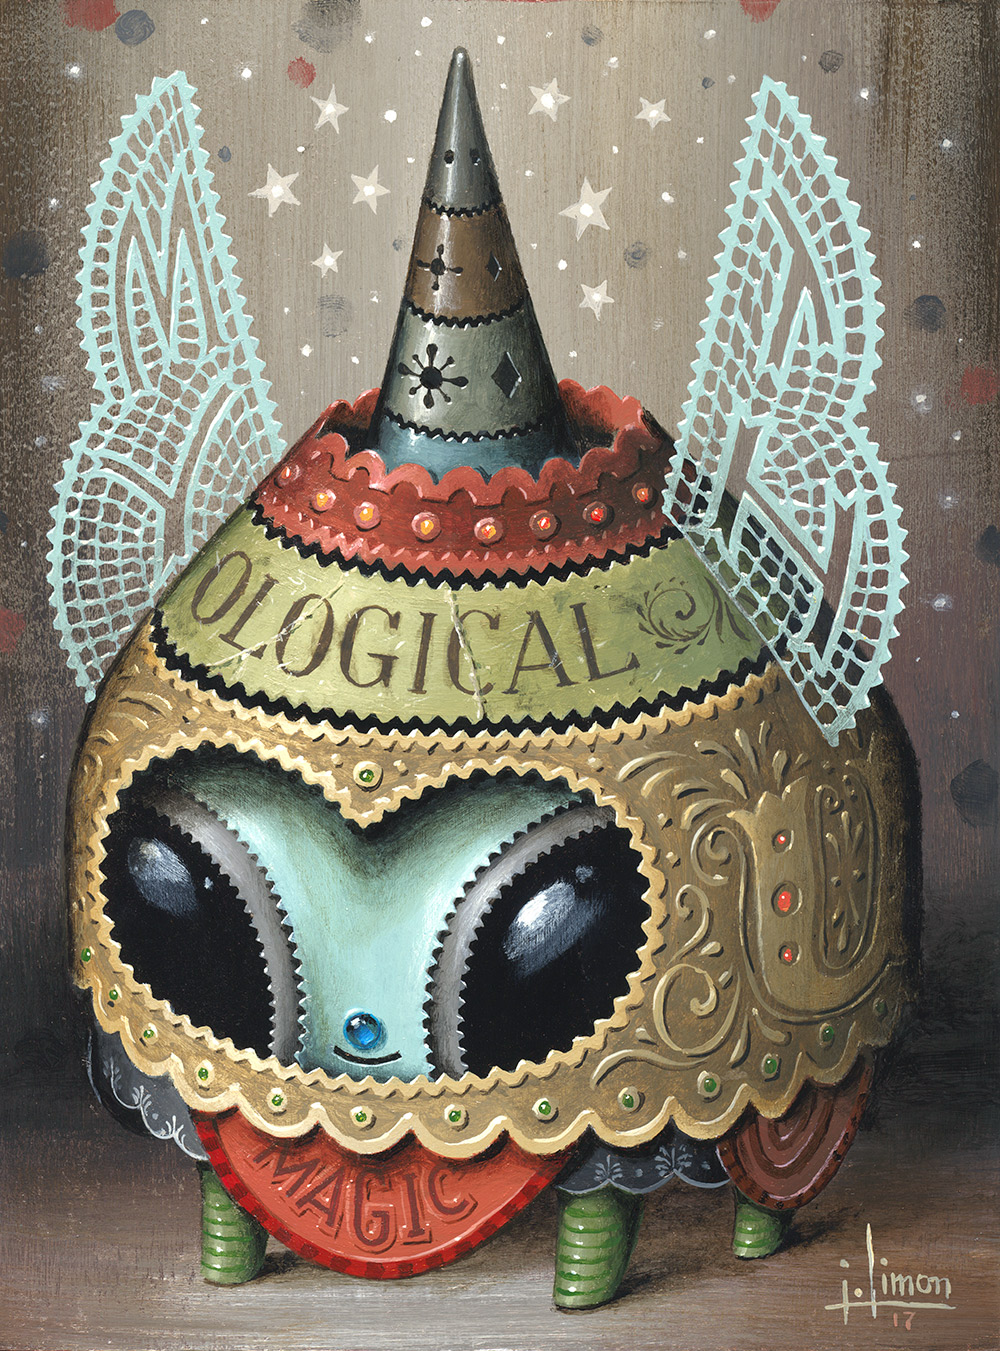 "Mythological , 6"" x 8"", Acrylic on Panel, Available at  Nucleus Portland"